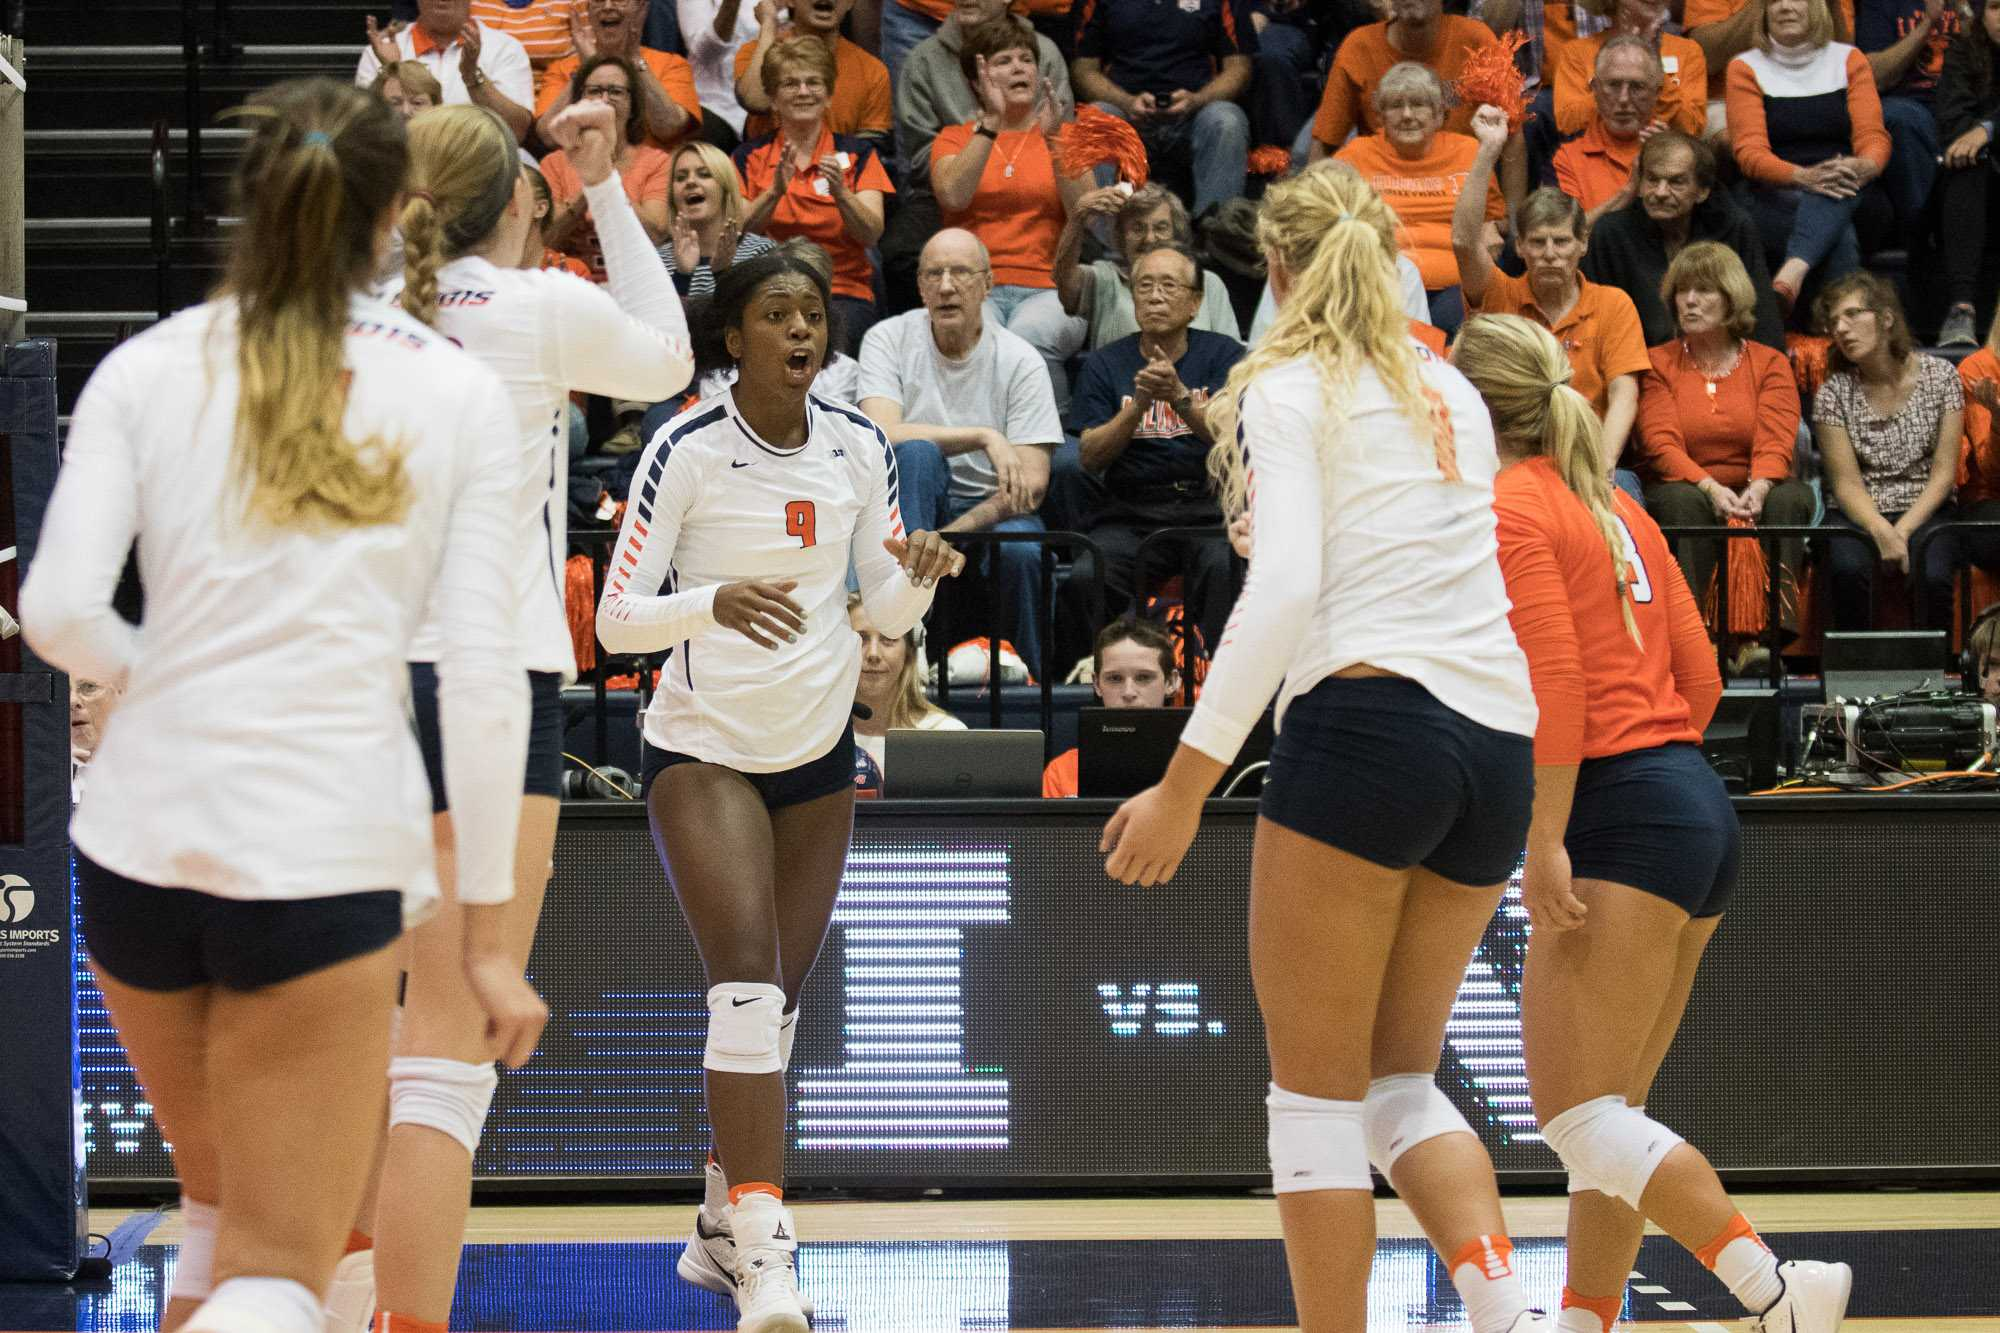 Illinois' Naya Crittenden celebrates a point during the game against Nebraska on 9-28-16.  The Illini lost 0-3.